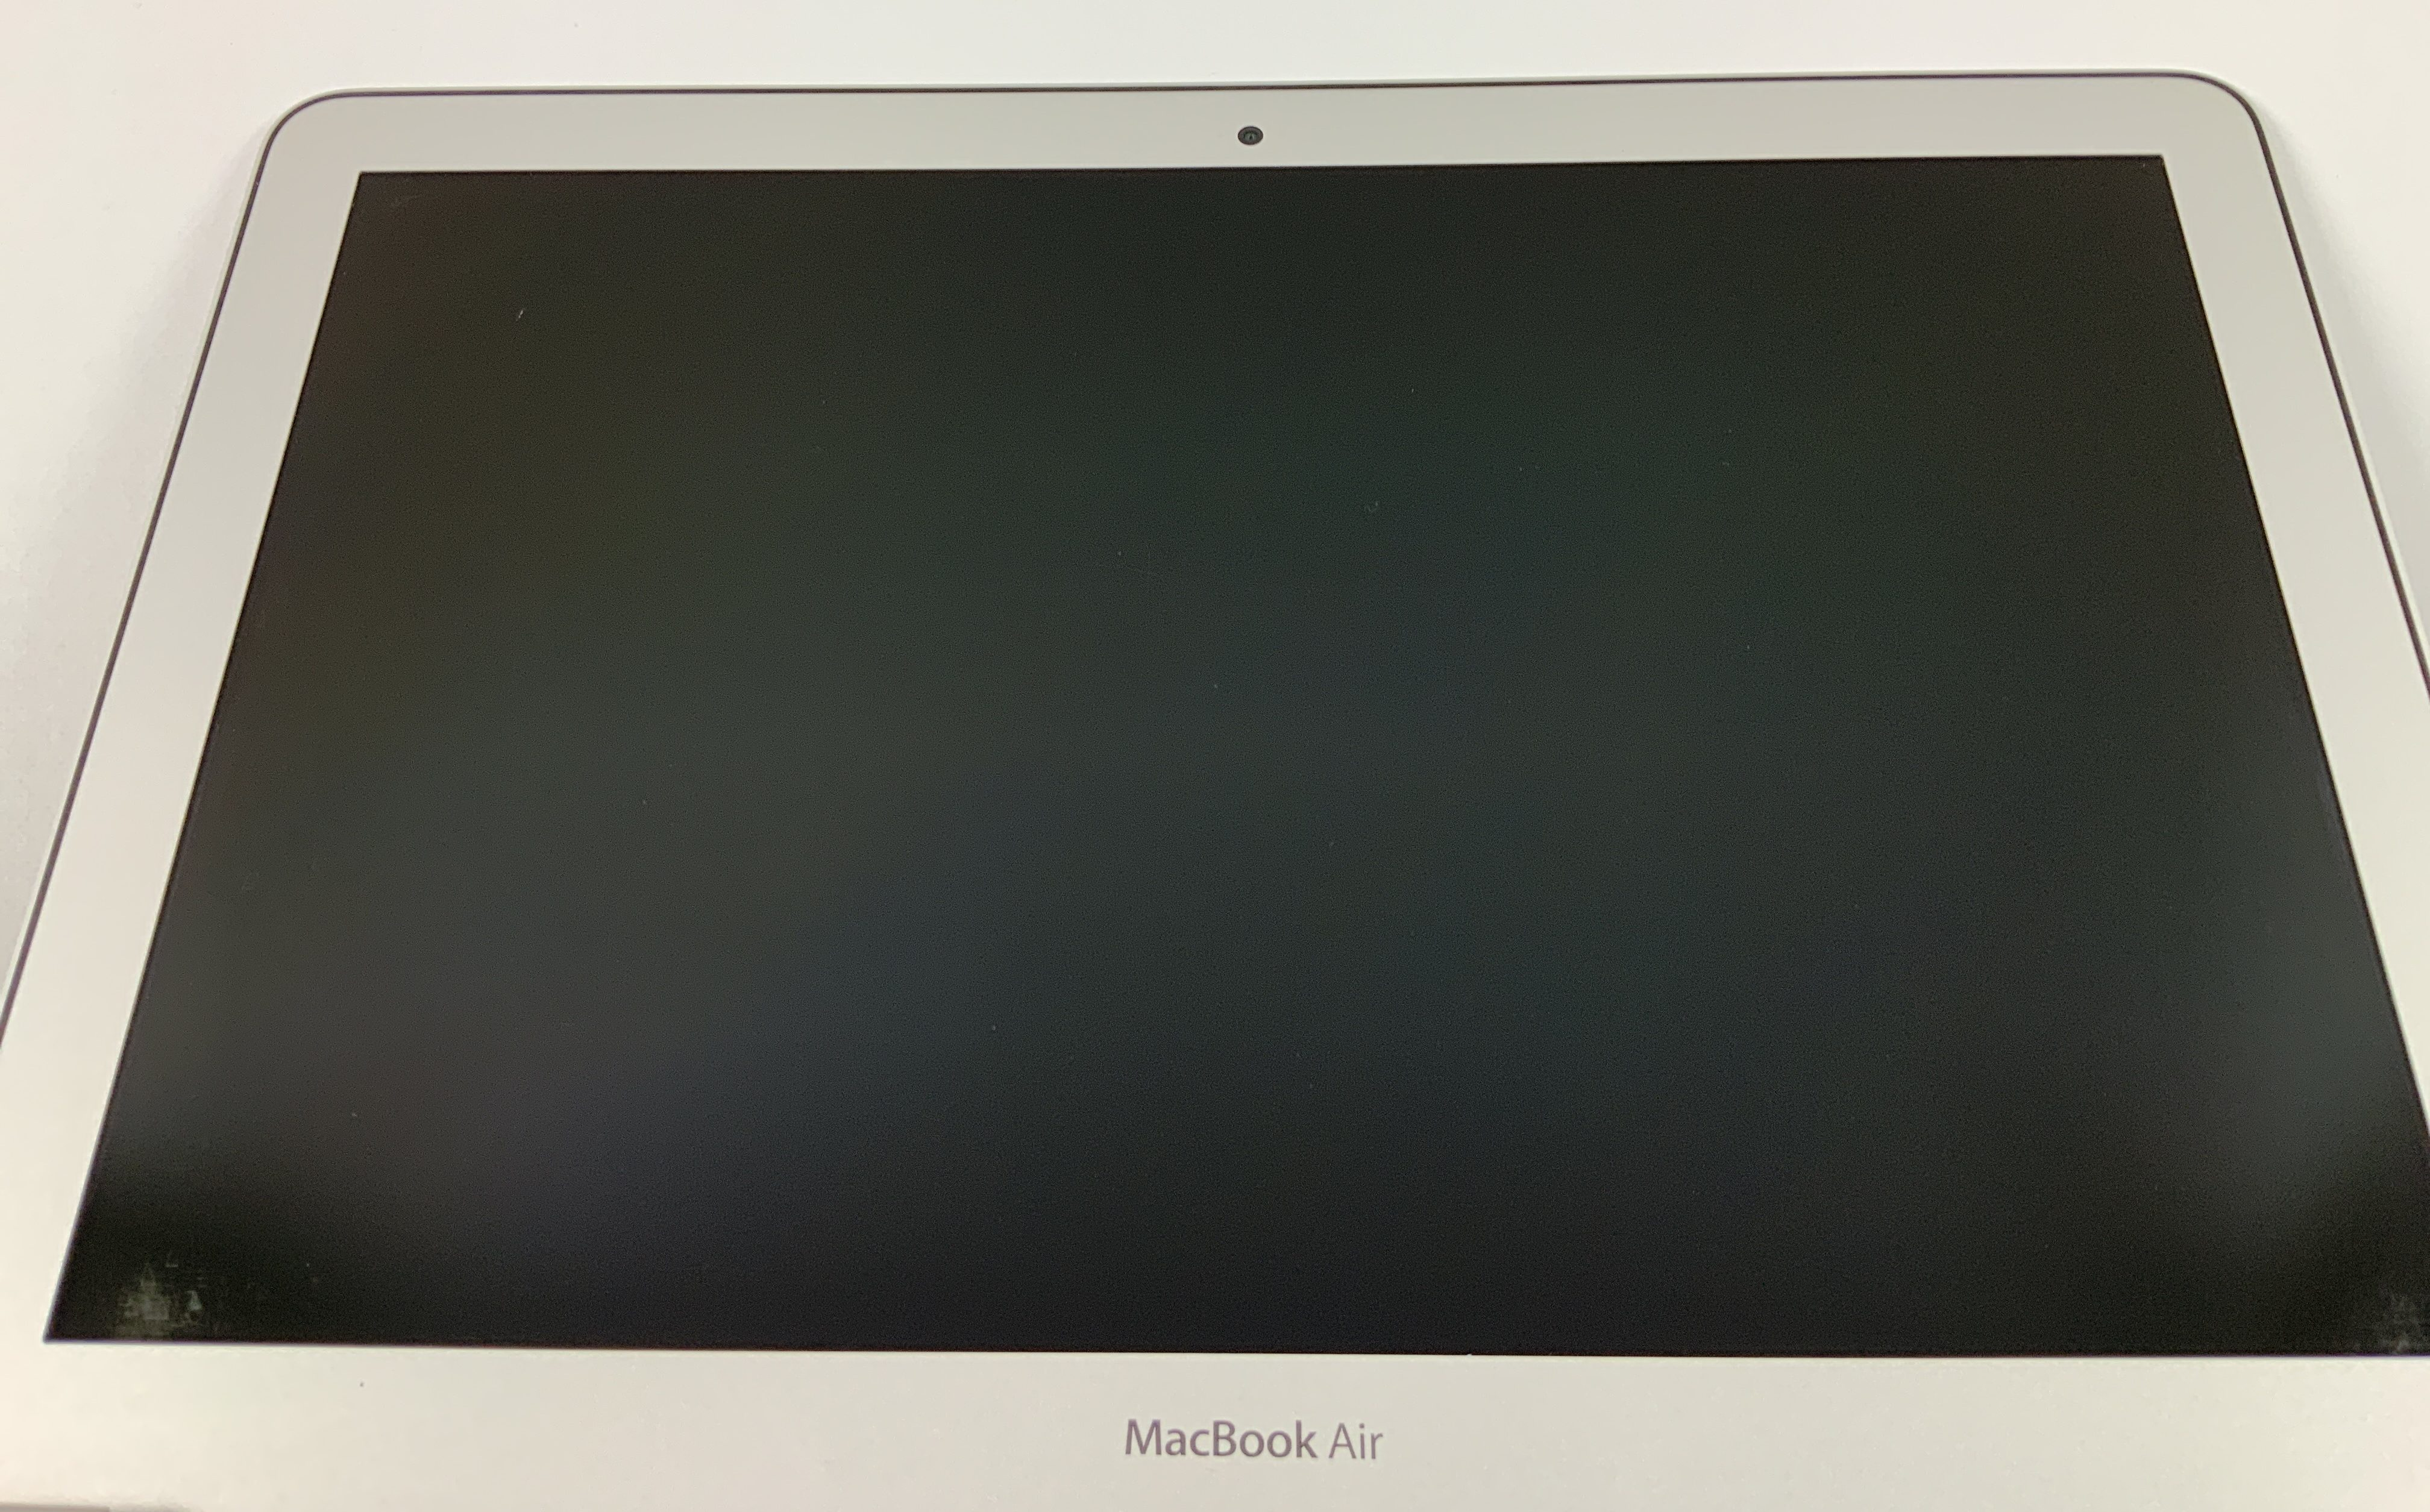 "MacBook Air 13"" Early 2015 (Intel Core i5 1.6 GHz 8 GB RAM 256 GB SSD), Intel Core i5 1.6 GHz, 8 GB RAM, 256 GB SSD, Kuva 2"